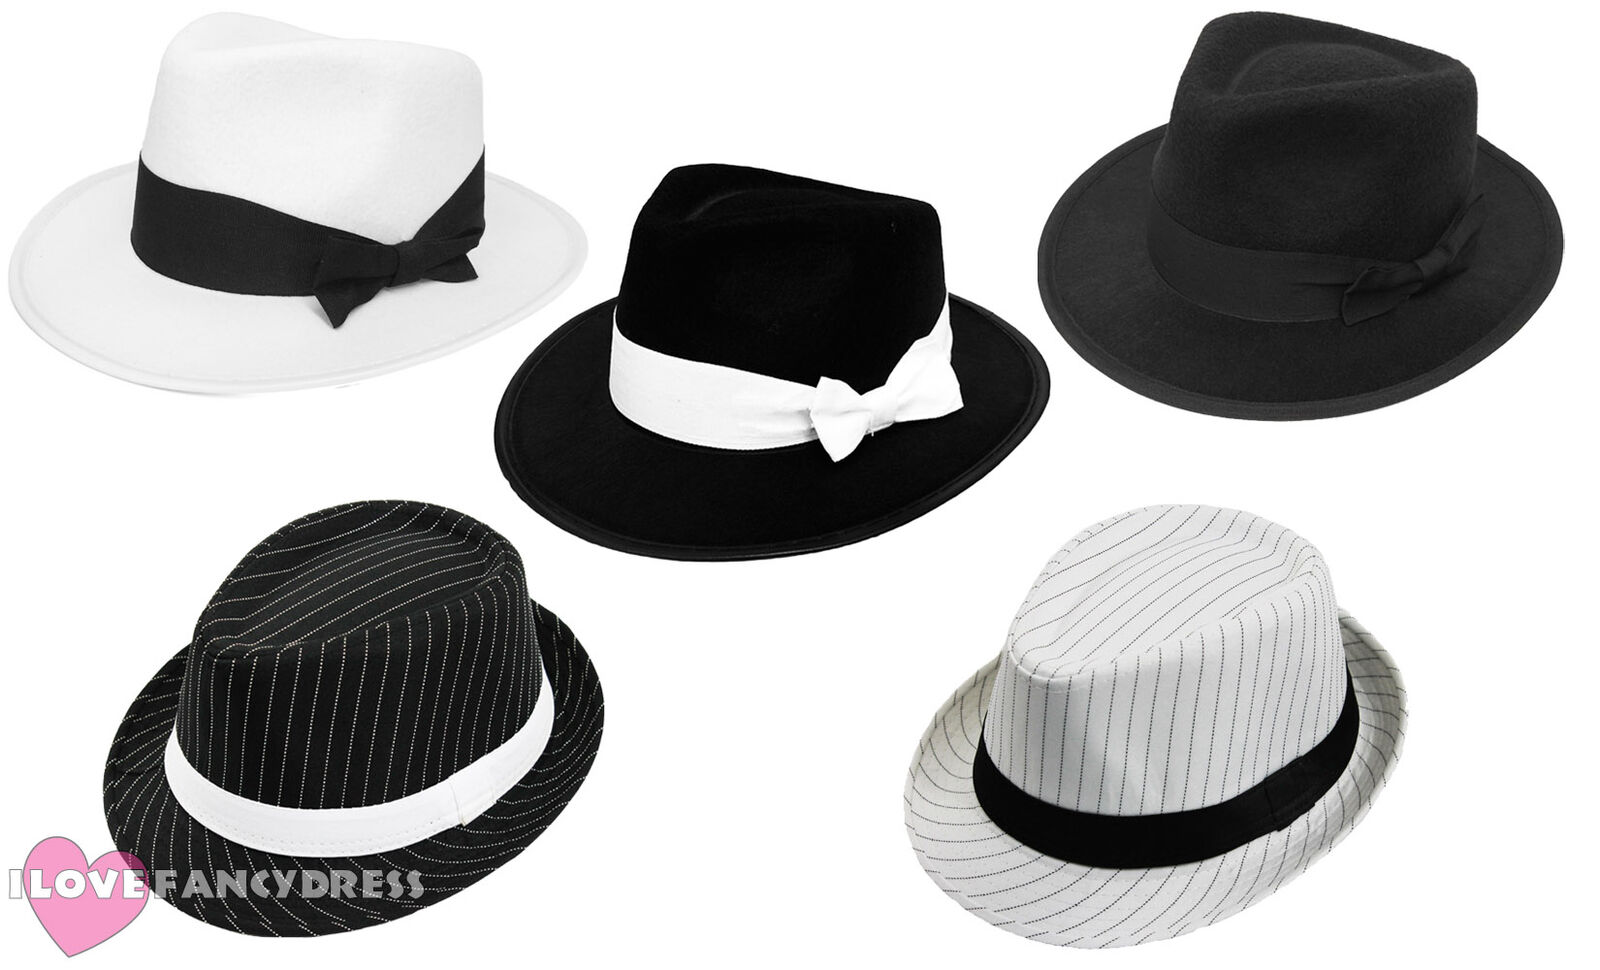 ADULT GANGSTER HAT 1920 S FANCY DRESS TRILBY AL CAPONE GATSBY COSTUME  ACCESSORY b6c406701e7